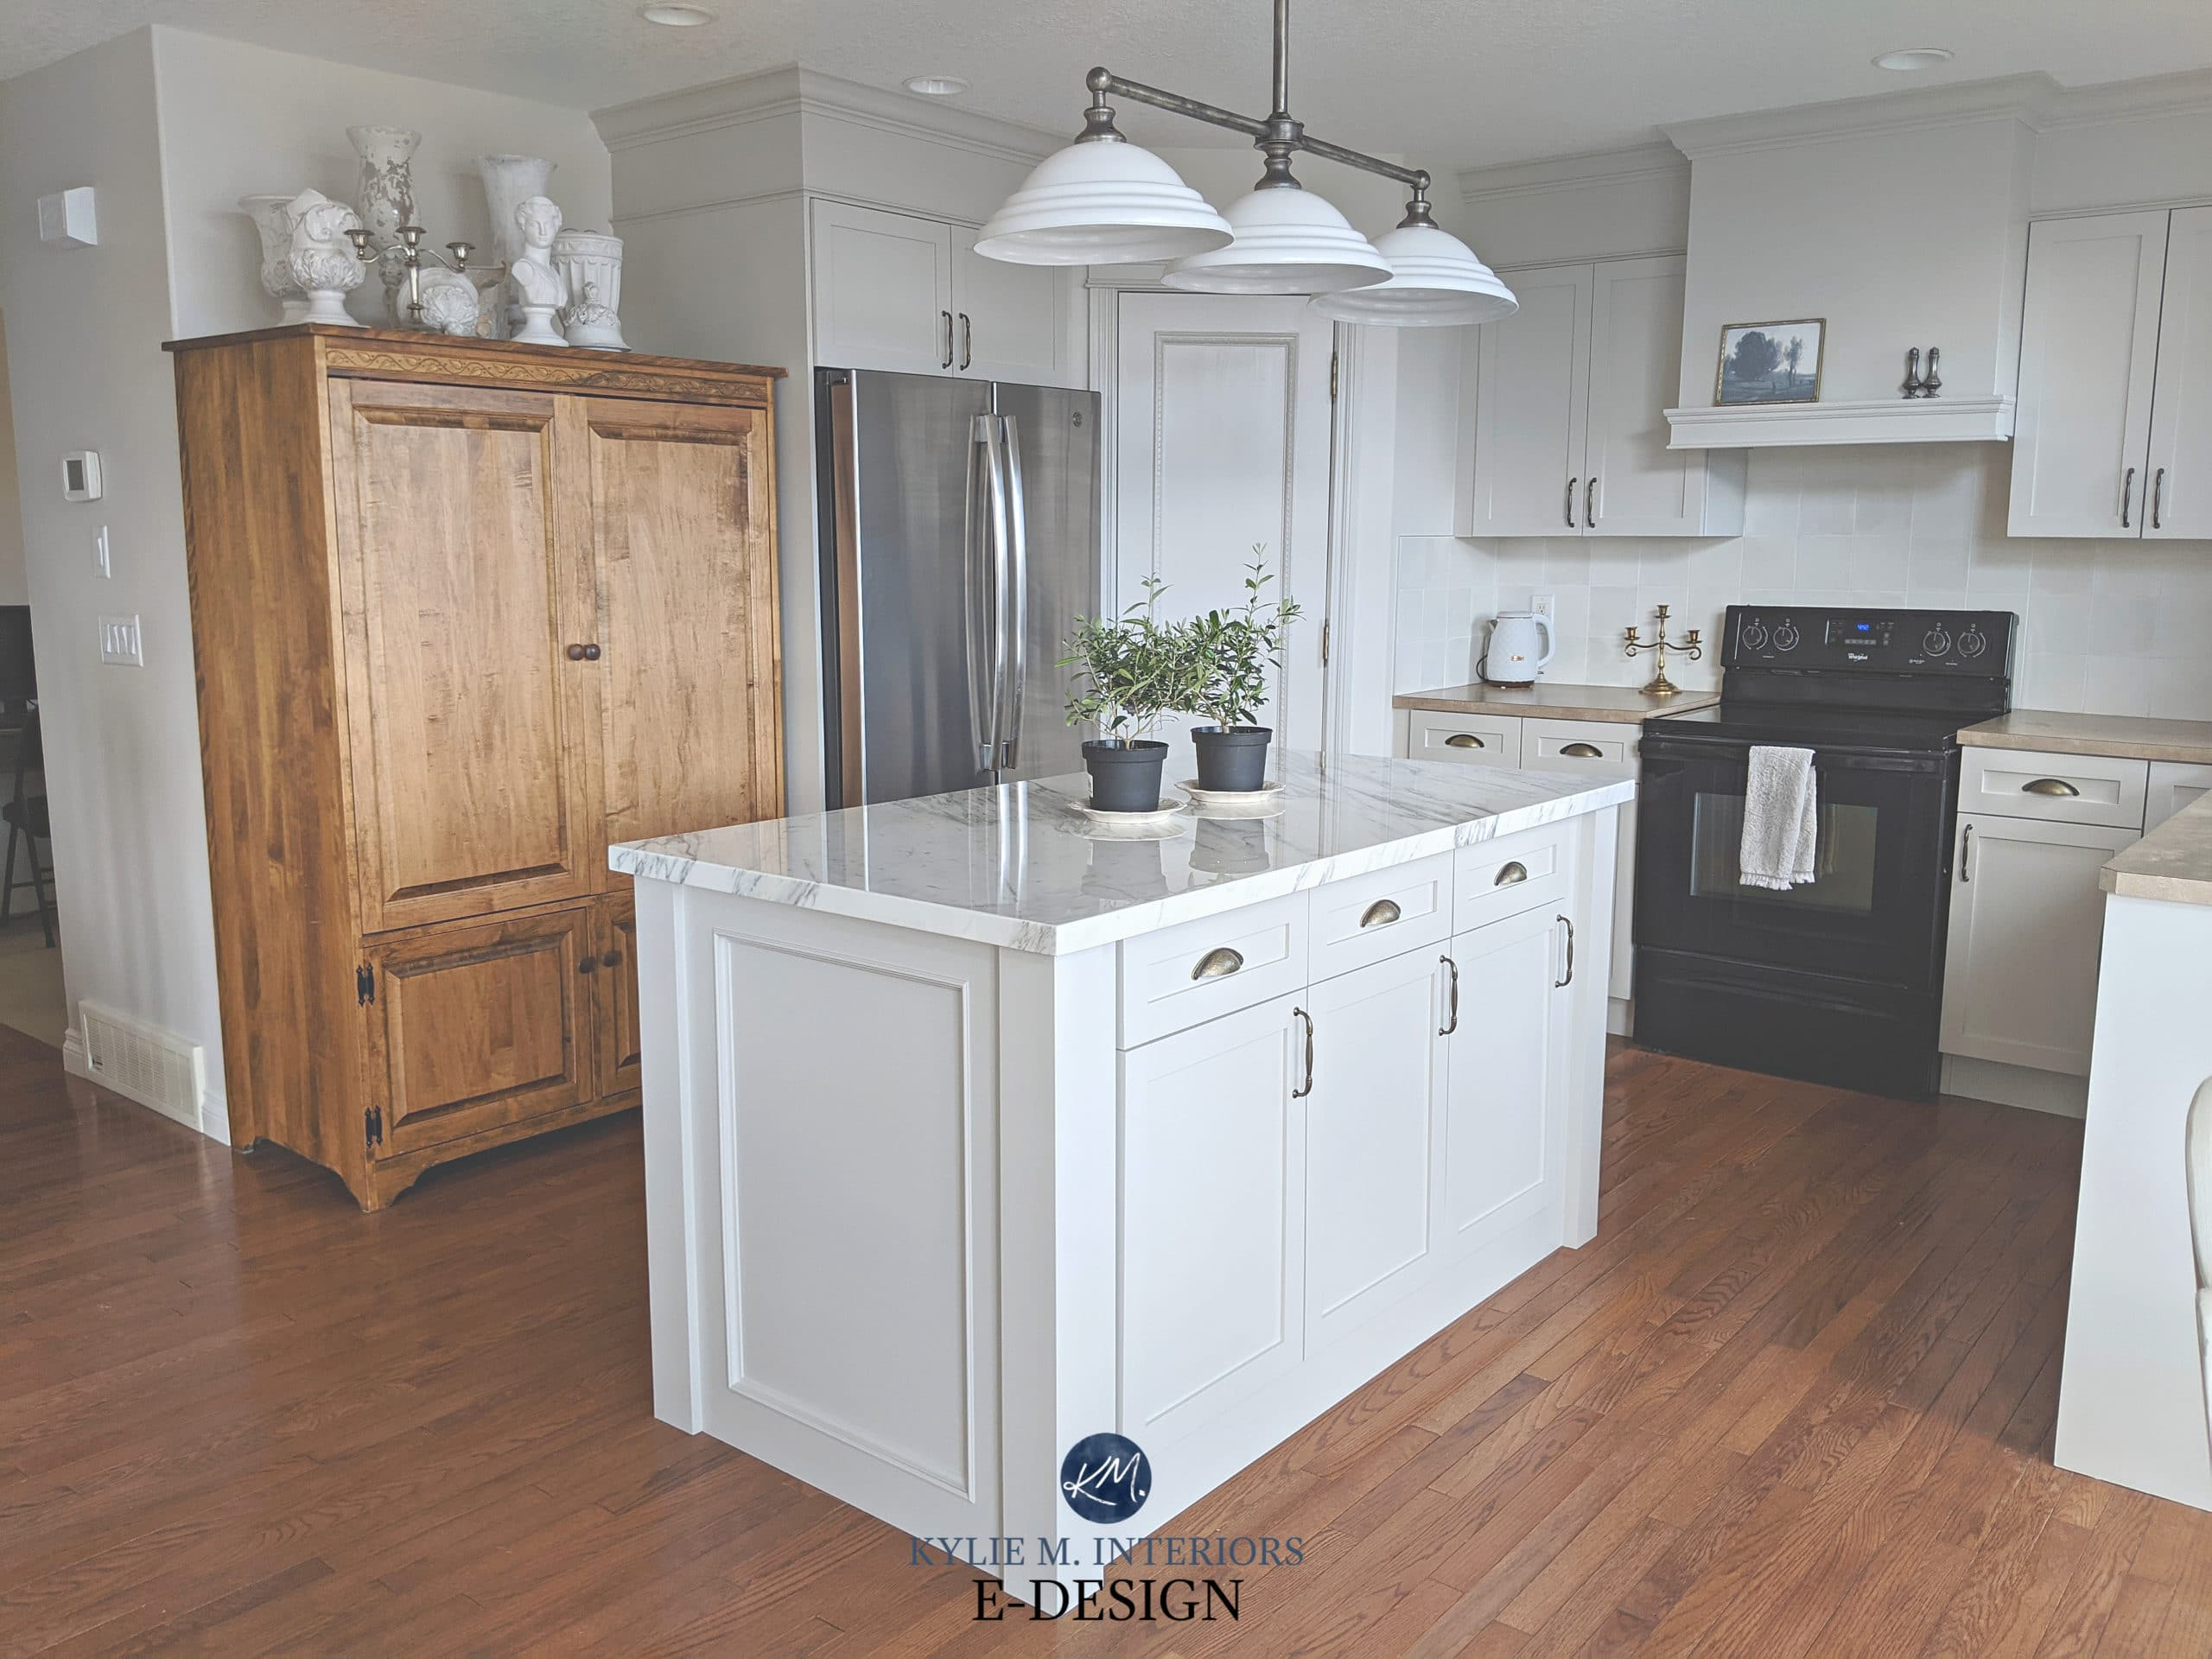 Painted Maple Wood Kitchen Cabinets Sherwin Agreeable Gray And Benjamin Classic Gray Marble Island Beige Formica Countertops Kylie M Interiors Edesign 2